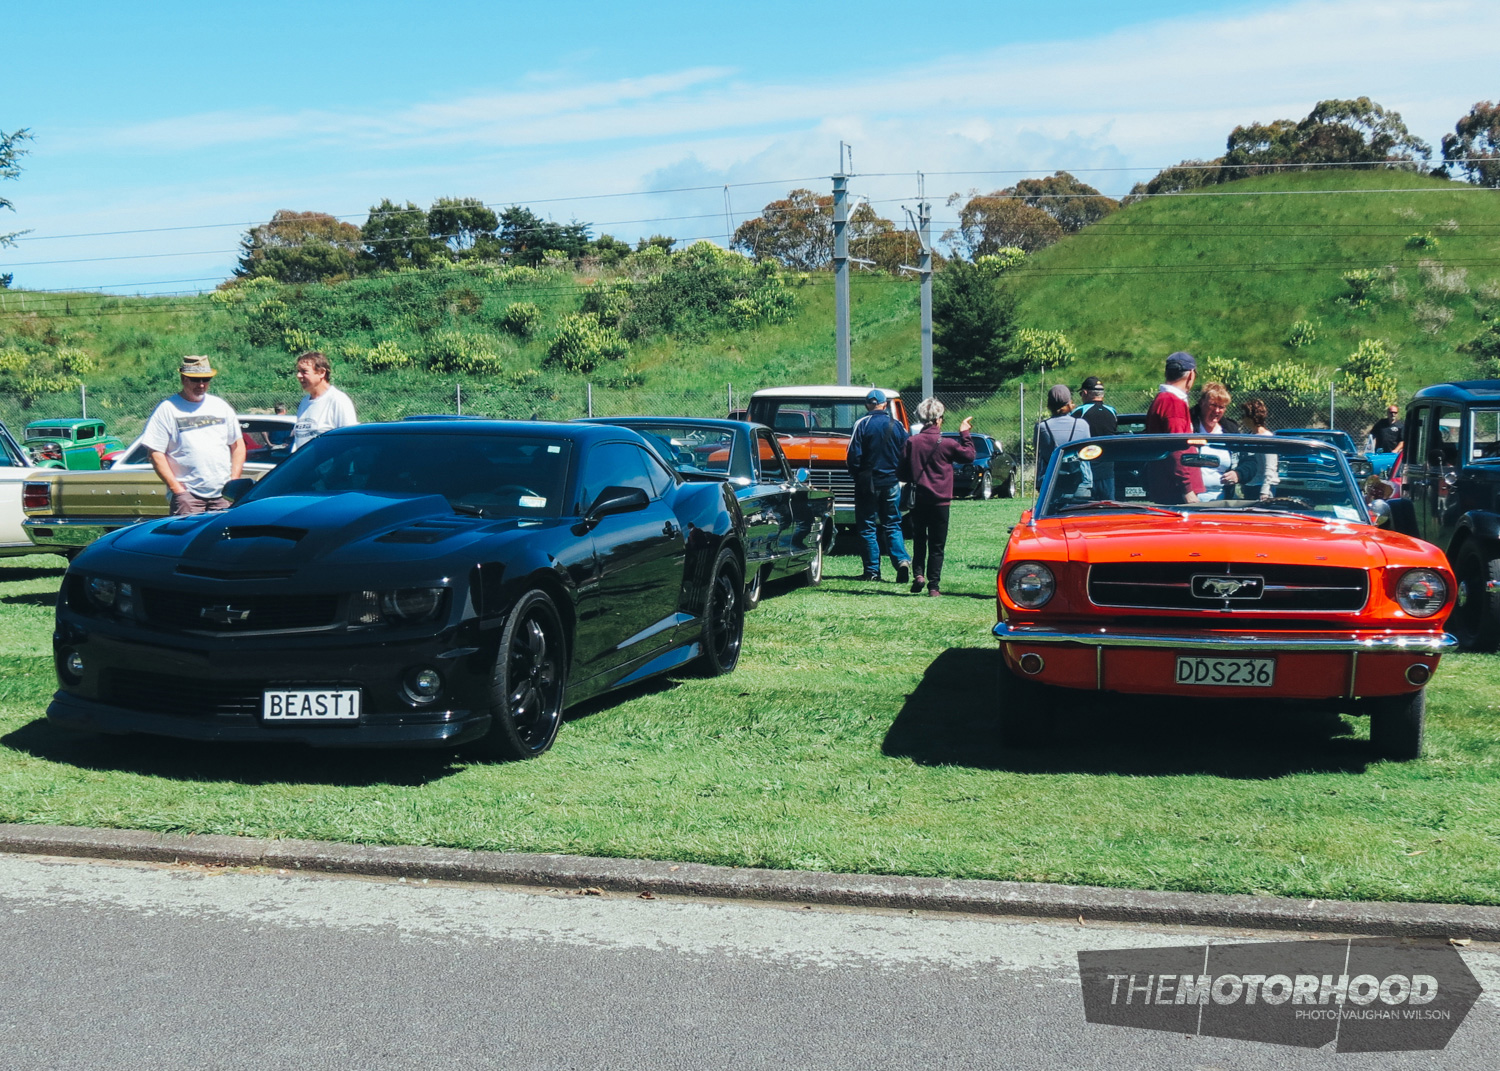 Vehicles were parked up on the grassy verges and admired by visitors